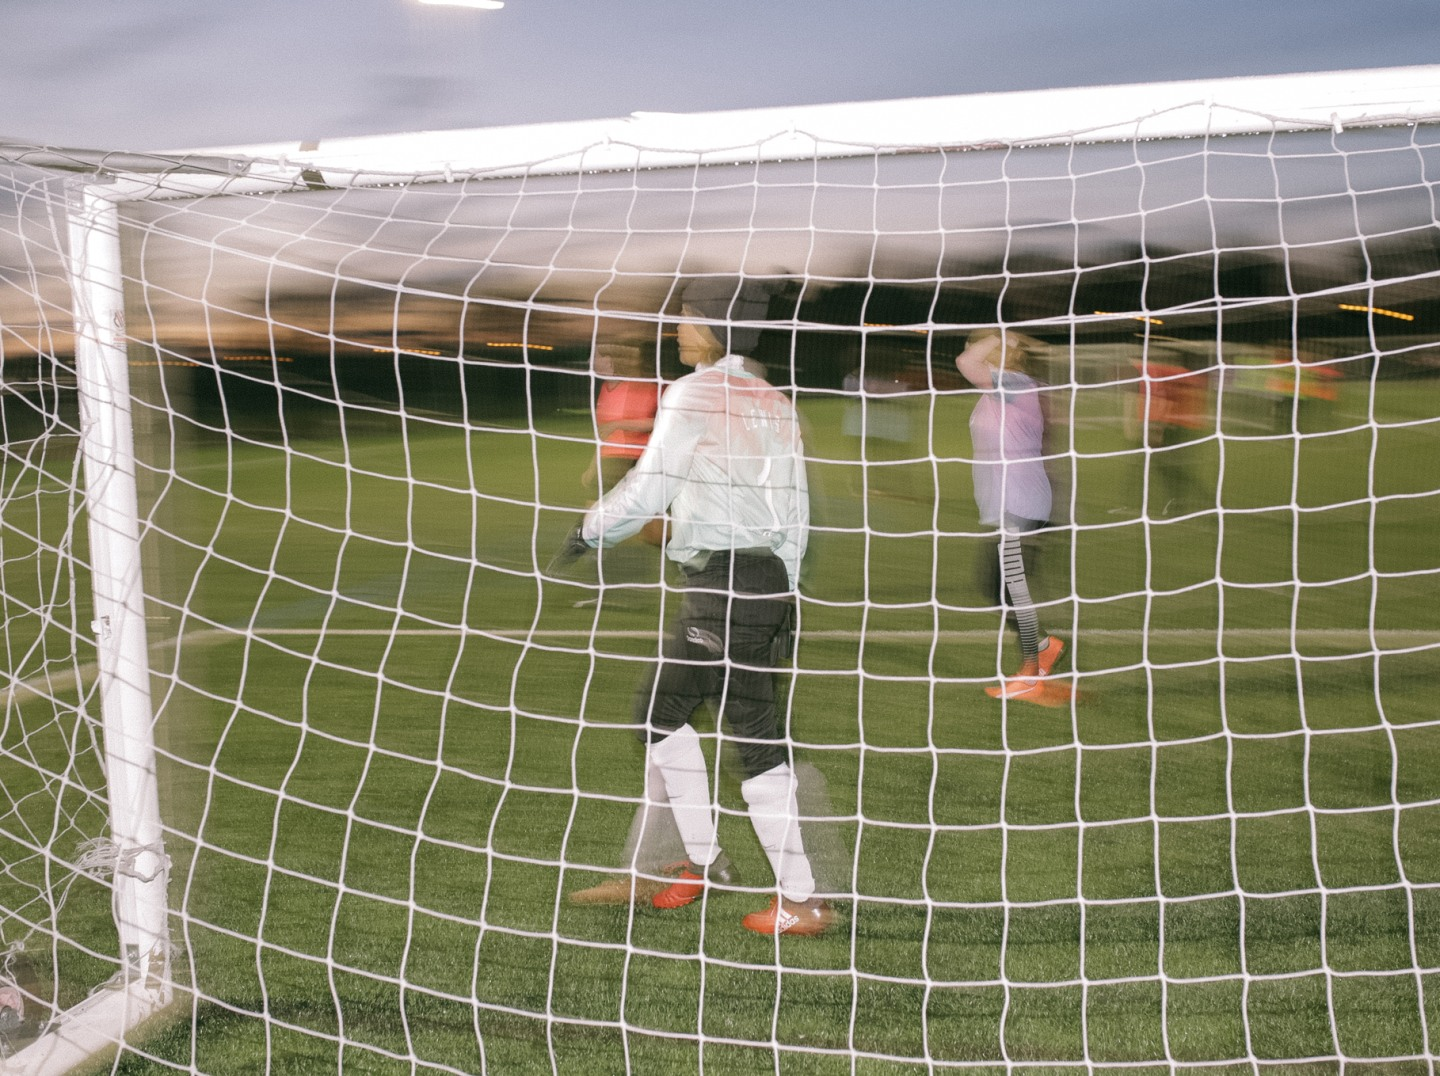 How Romance FC is building community through soccer